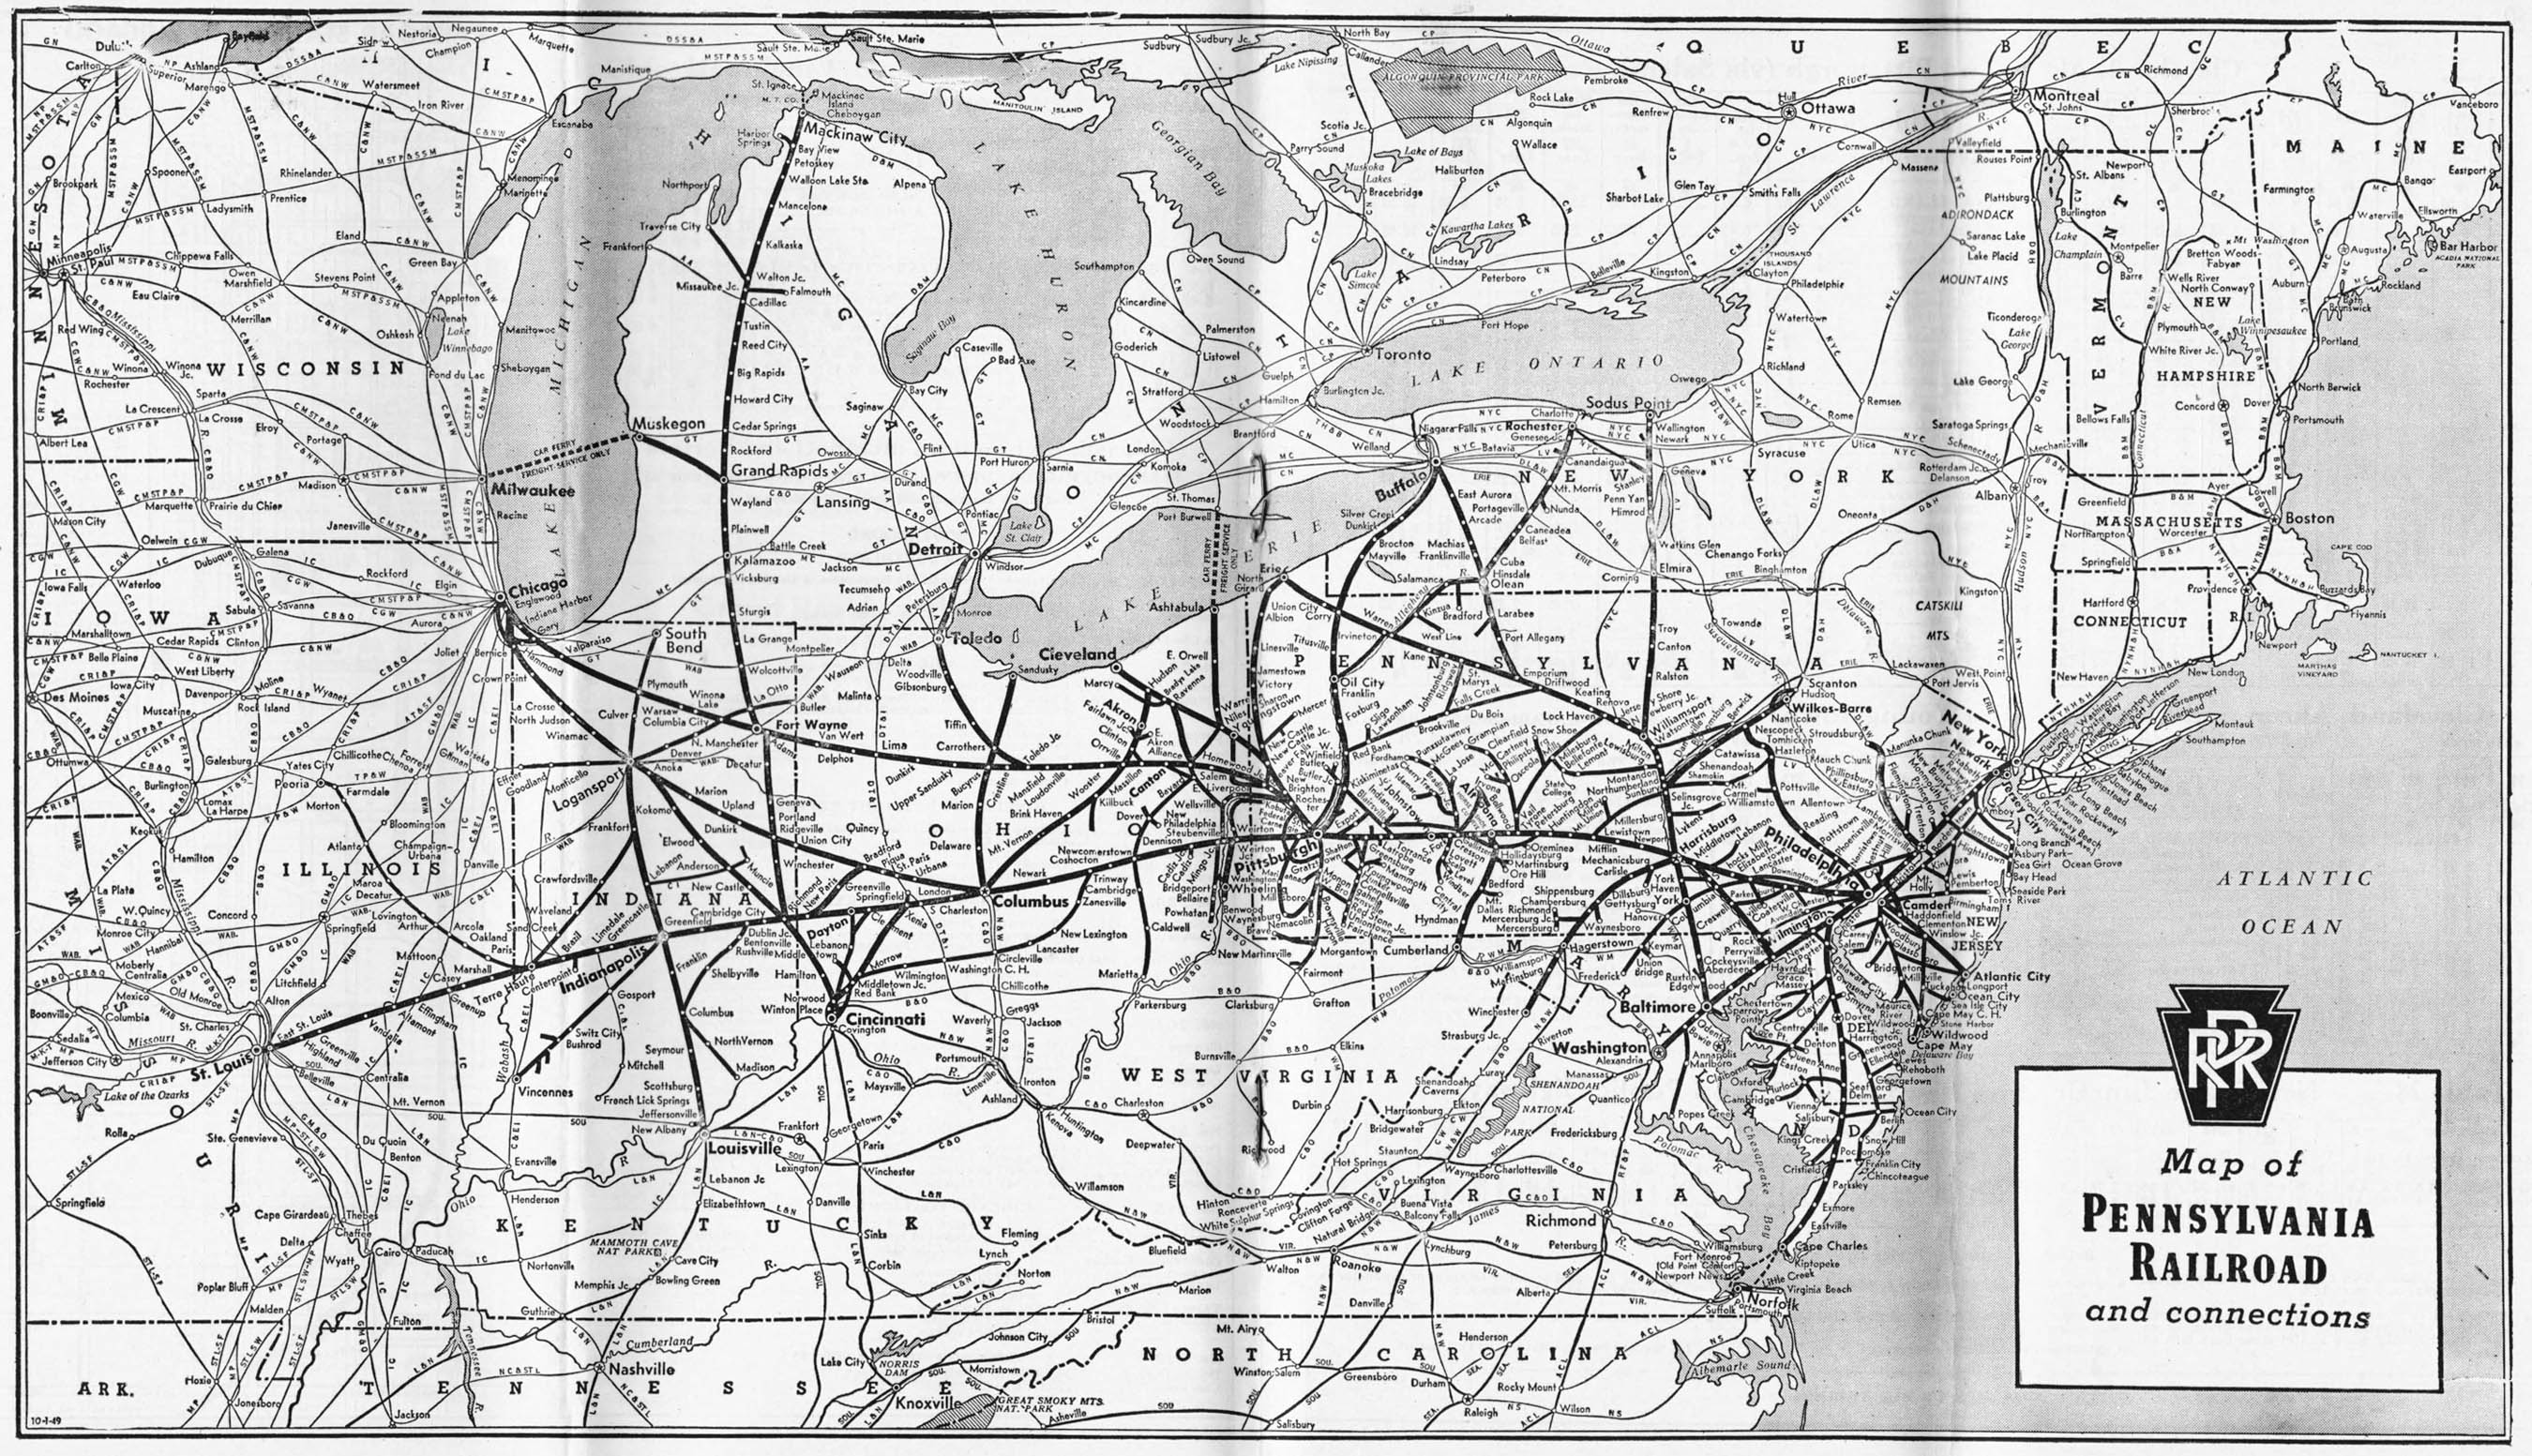 The Pennsylvania Railroad - Map of us railroads in 1900